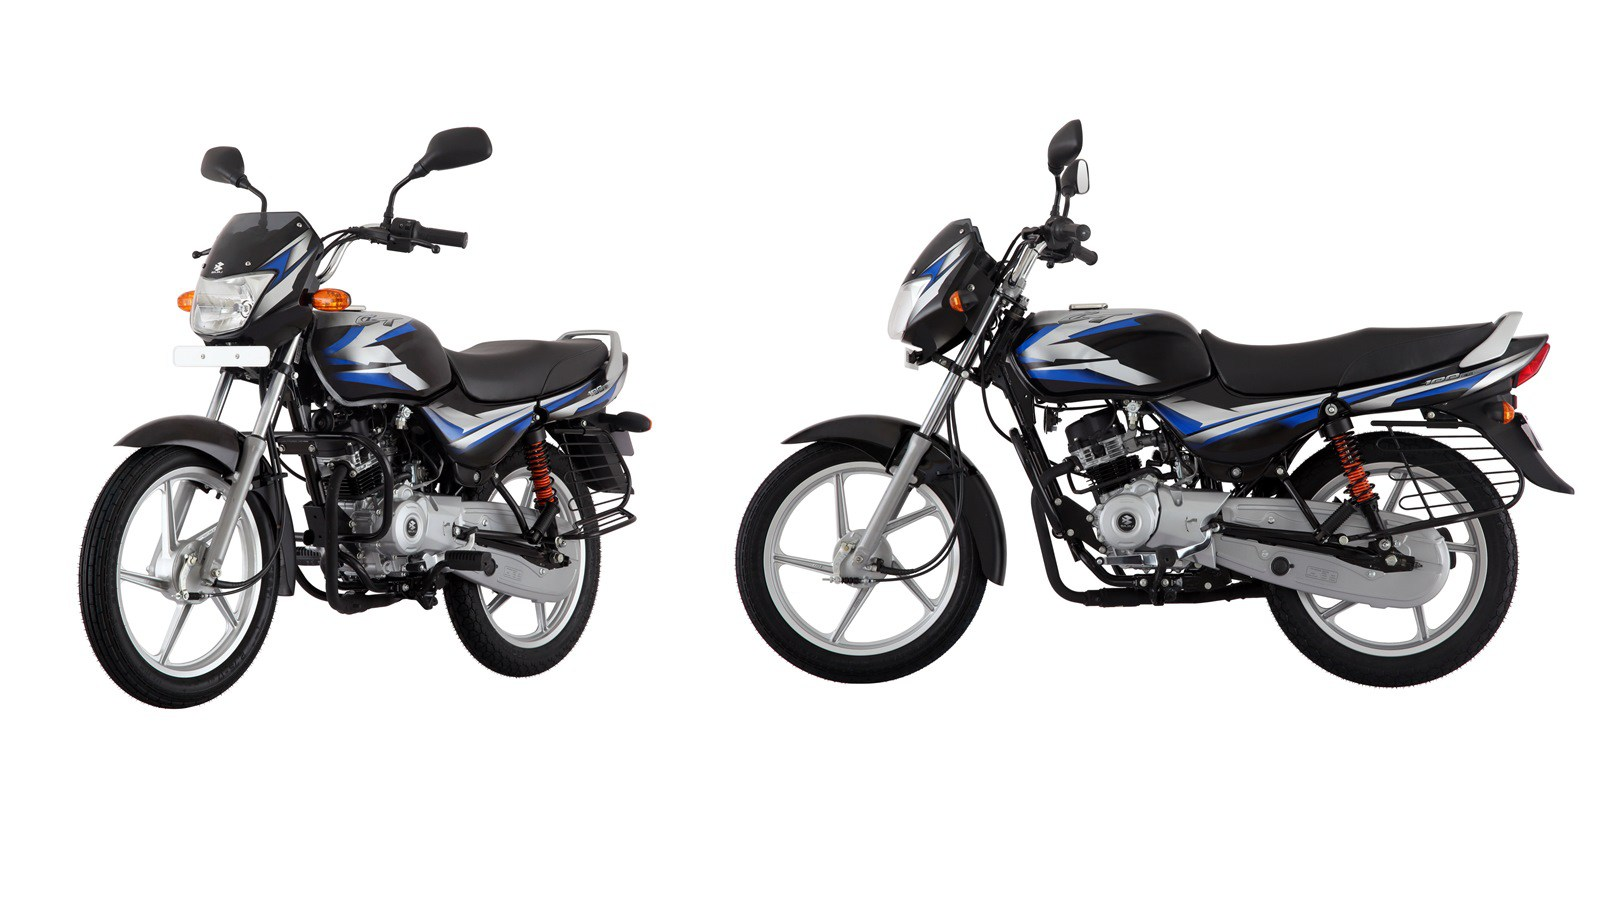 Bajaj-CT100-now-gets-electric-start-and-priced-at-Rs-38806